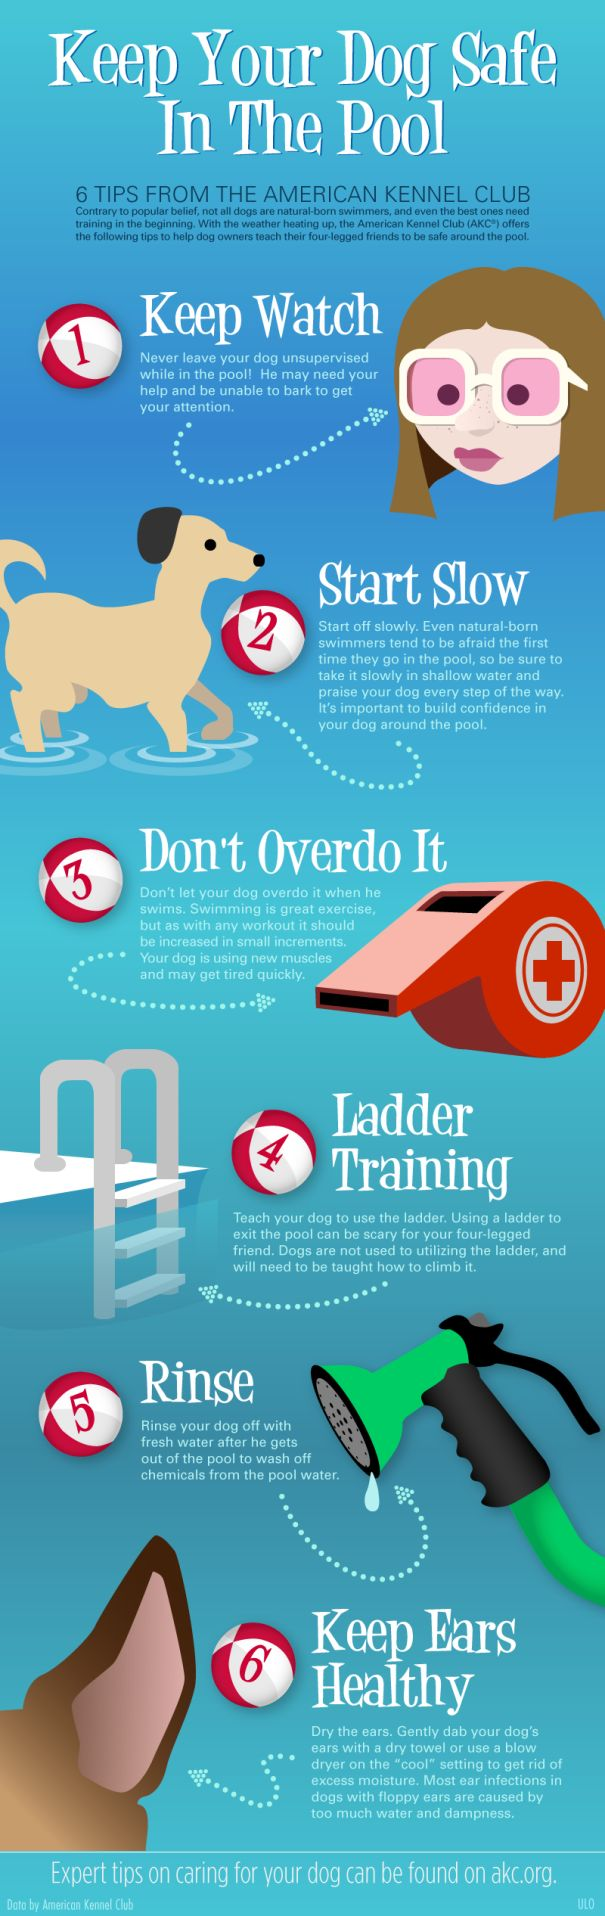 How To Keep Your Dog Safe In The Pool Infographic